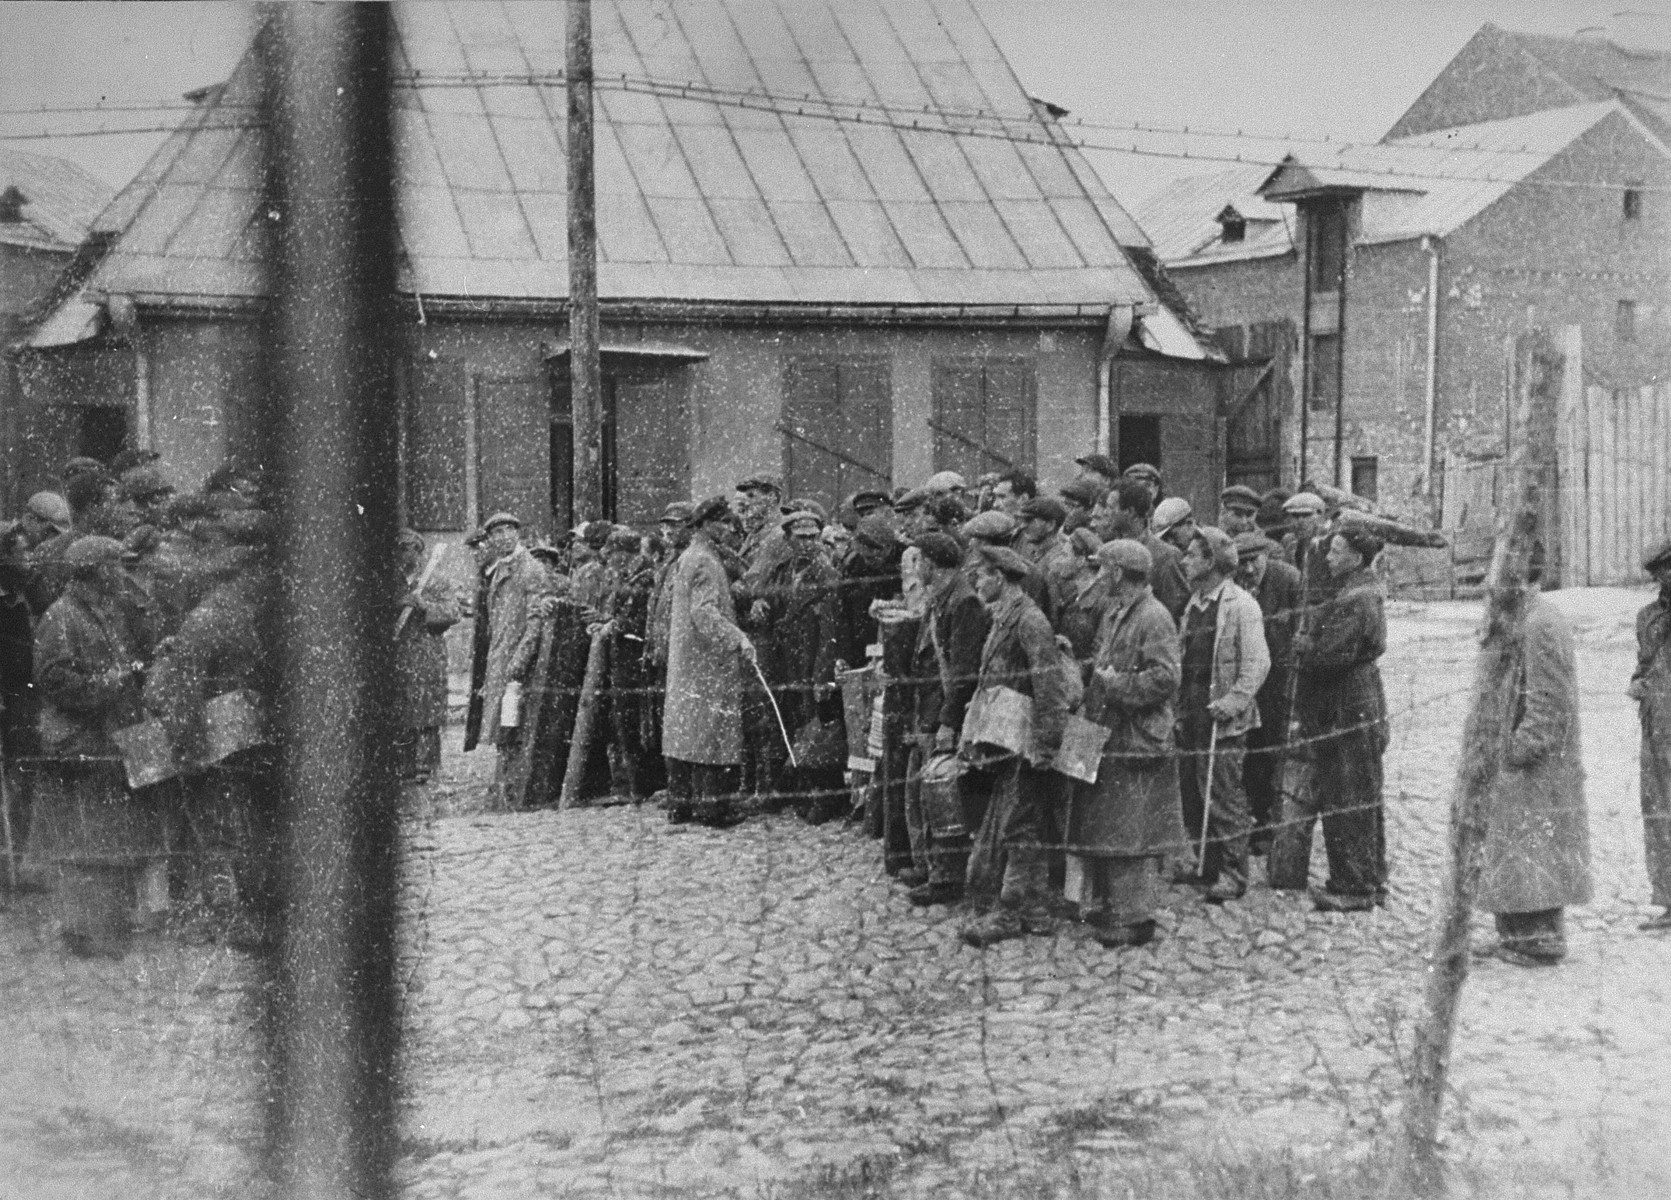 A group of Jews return to the ghetto after forced labor on the outside. They wait to be searched as they reenter the ghetto. A Jewish policeman holding a stick keeps the laborers in line.